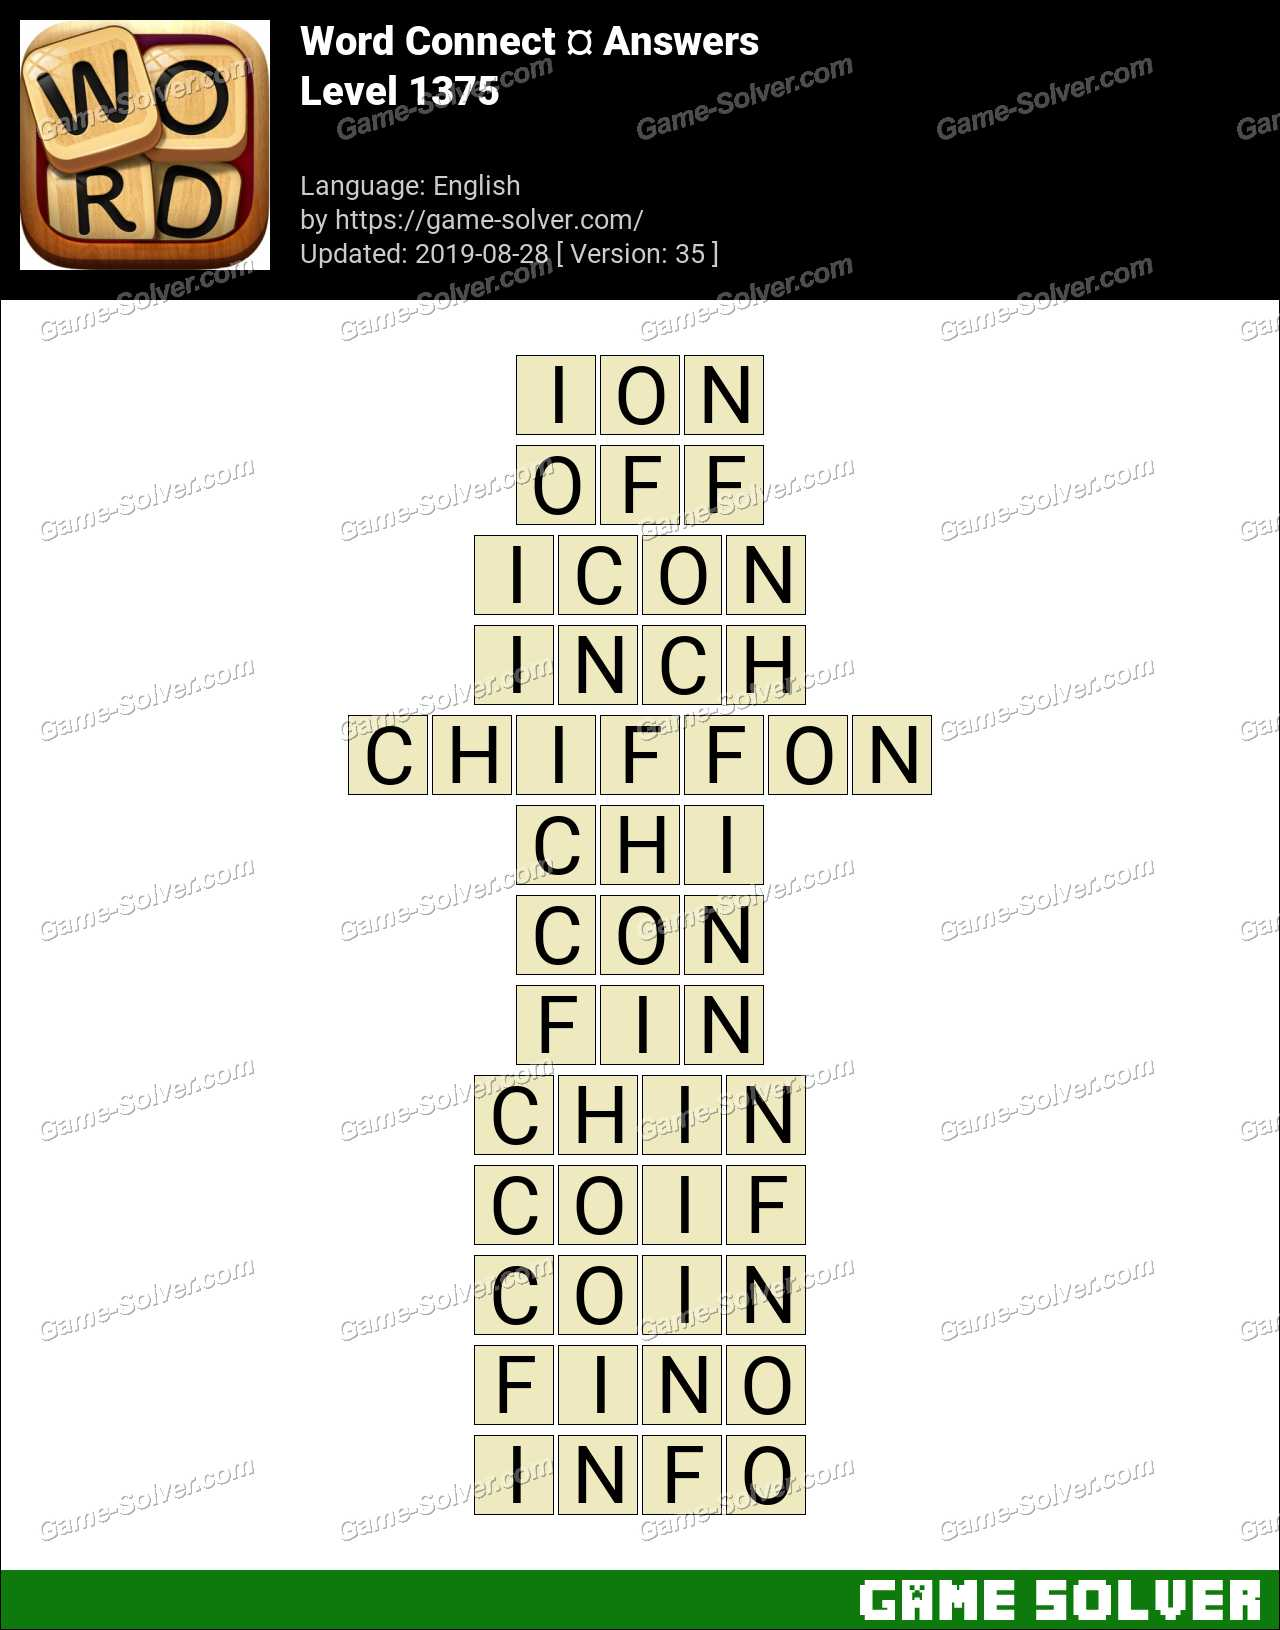 Word Connect Level 1375 Answers